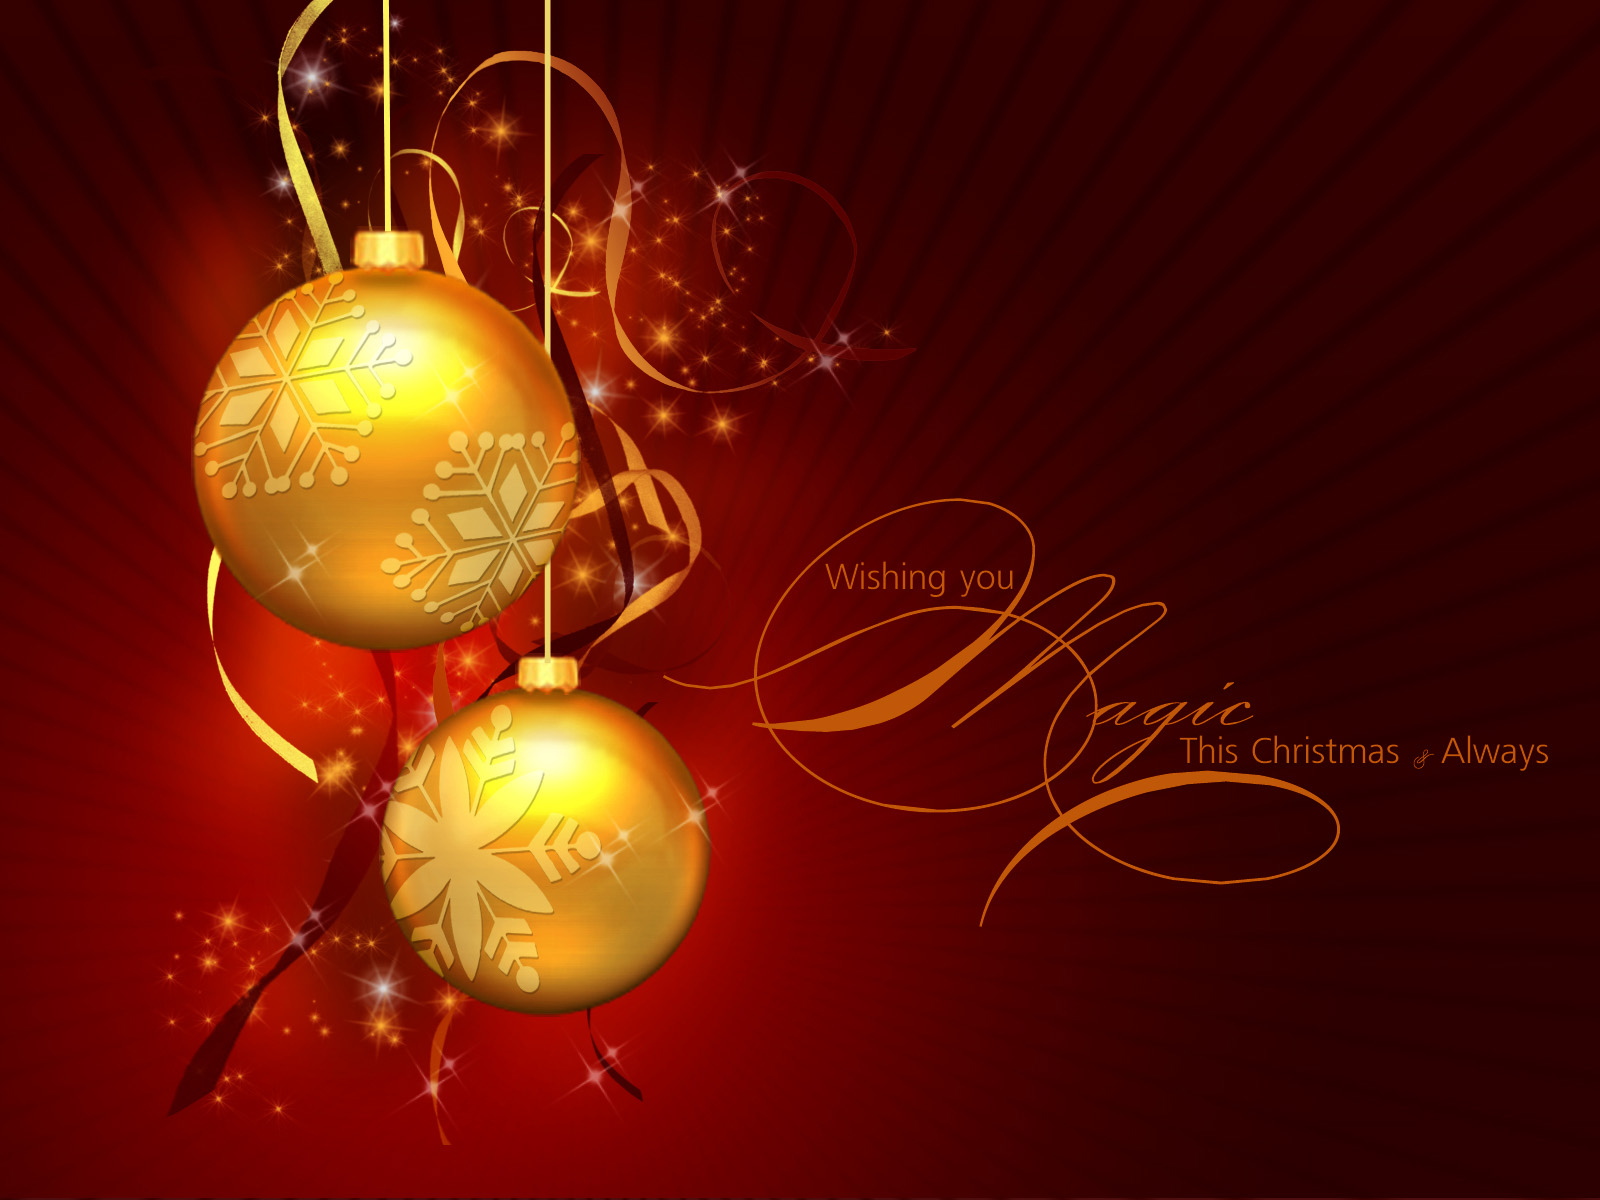 Wishing merry christmas wallpaper 7509 The Wondrous Pics